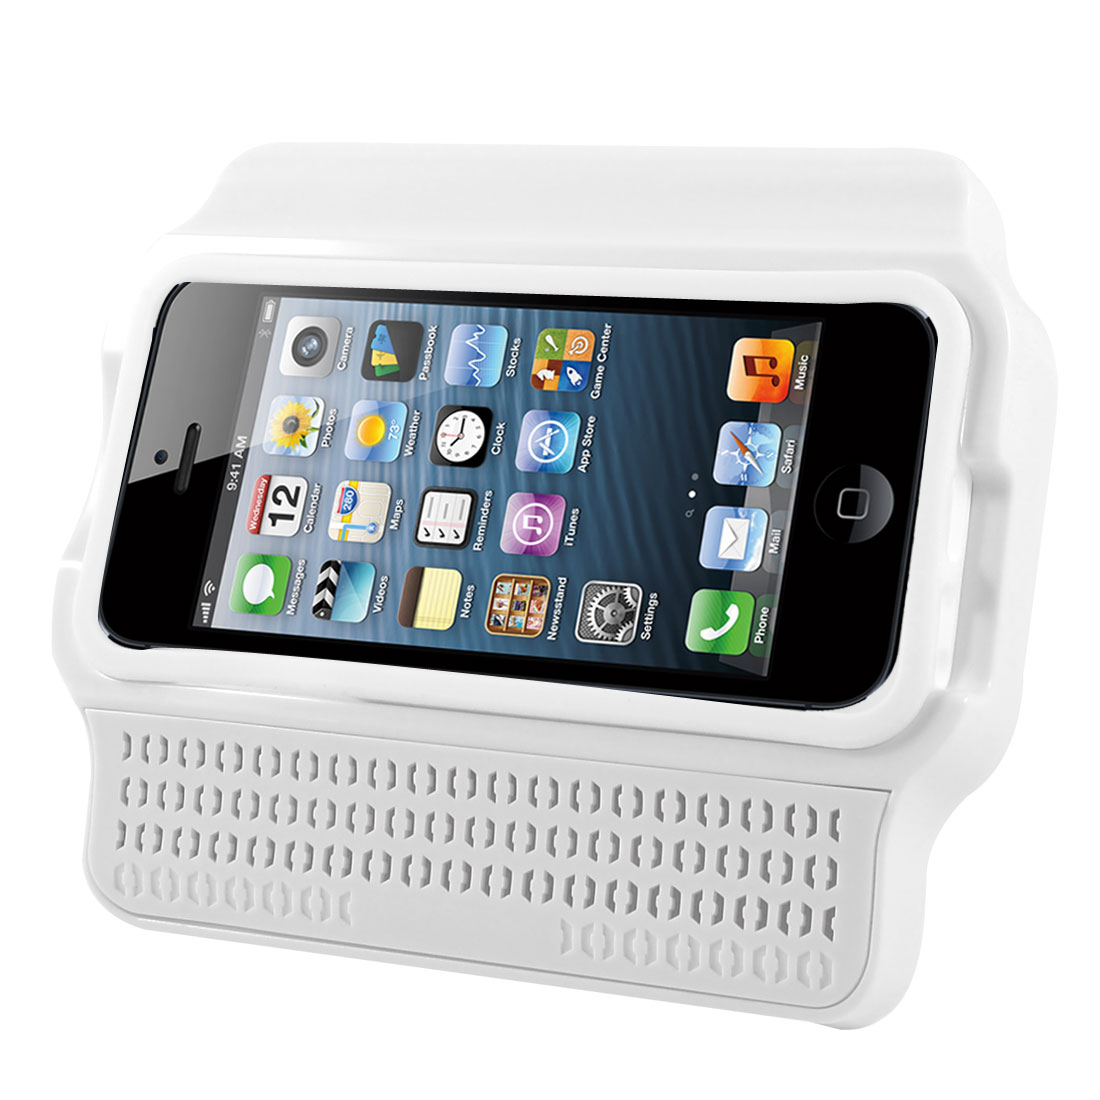 Silicone Cover White Plastic Stand Amplifier Holder for iPhone 5 5G 5th